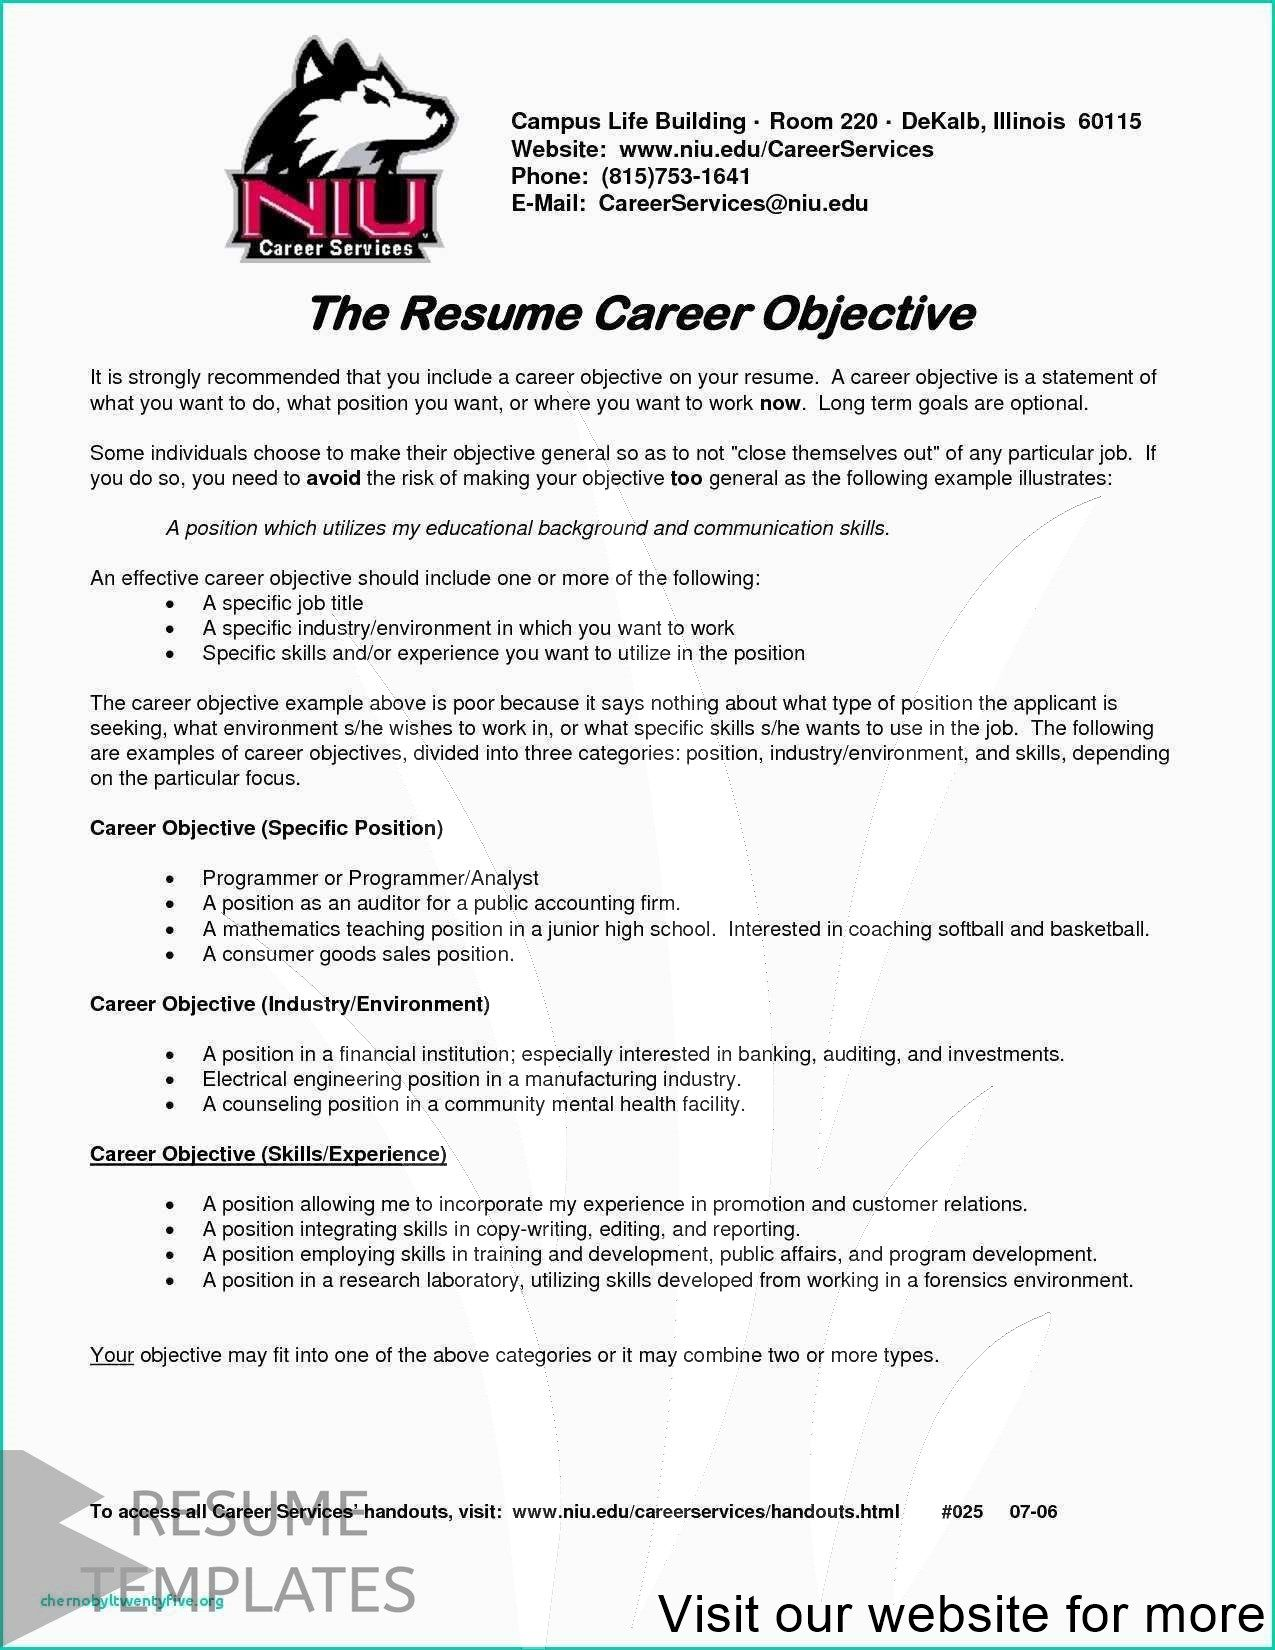 11 Resume Design Template Layout Free Resume Objective Sample Resume Objective Examples Resume Objective Statement Examples